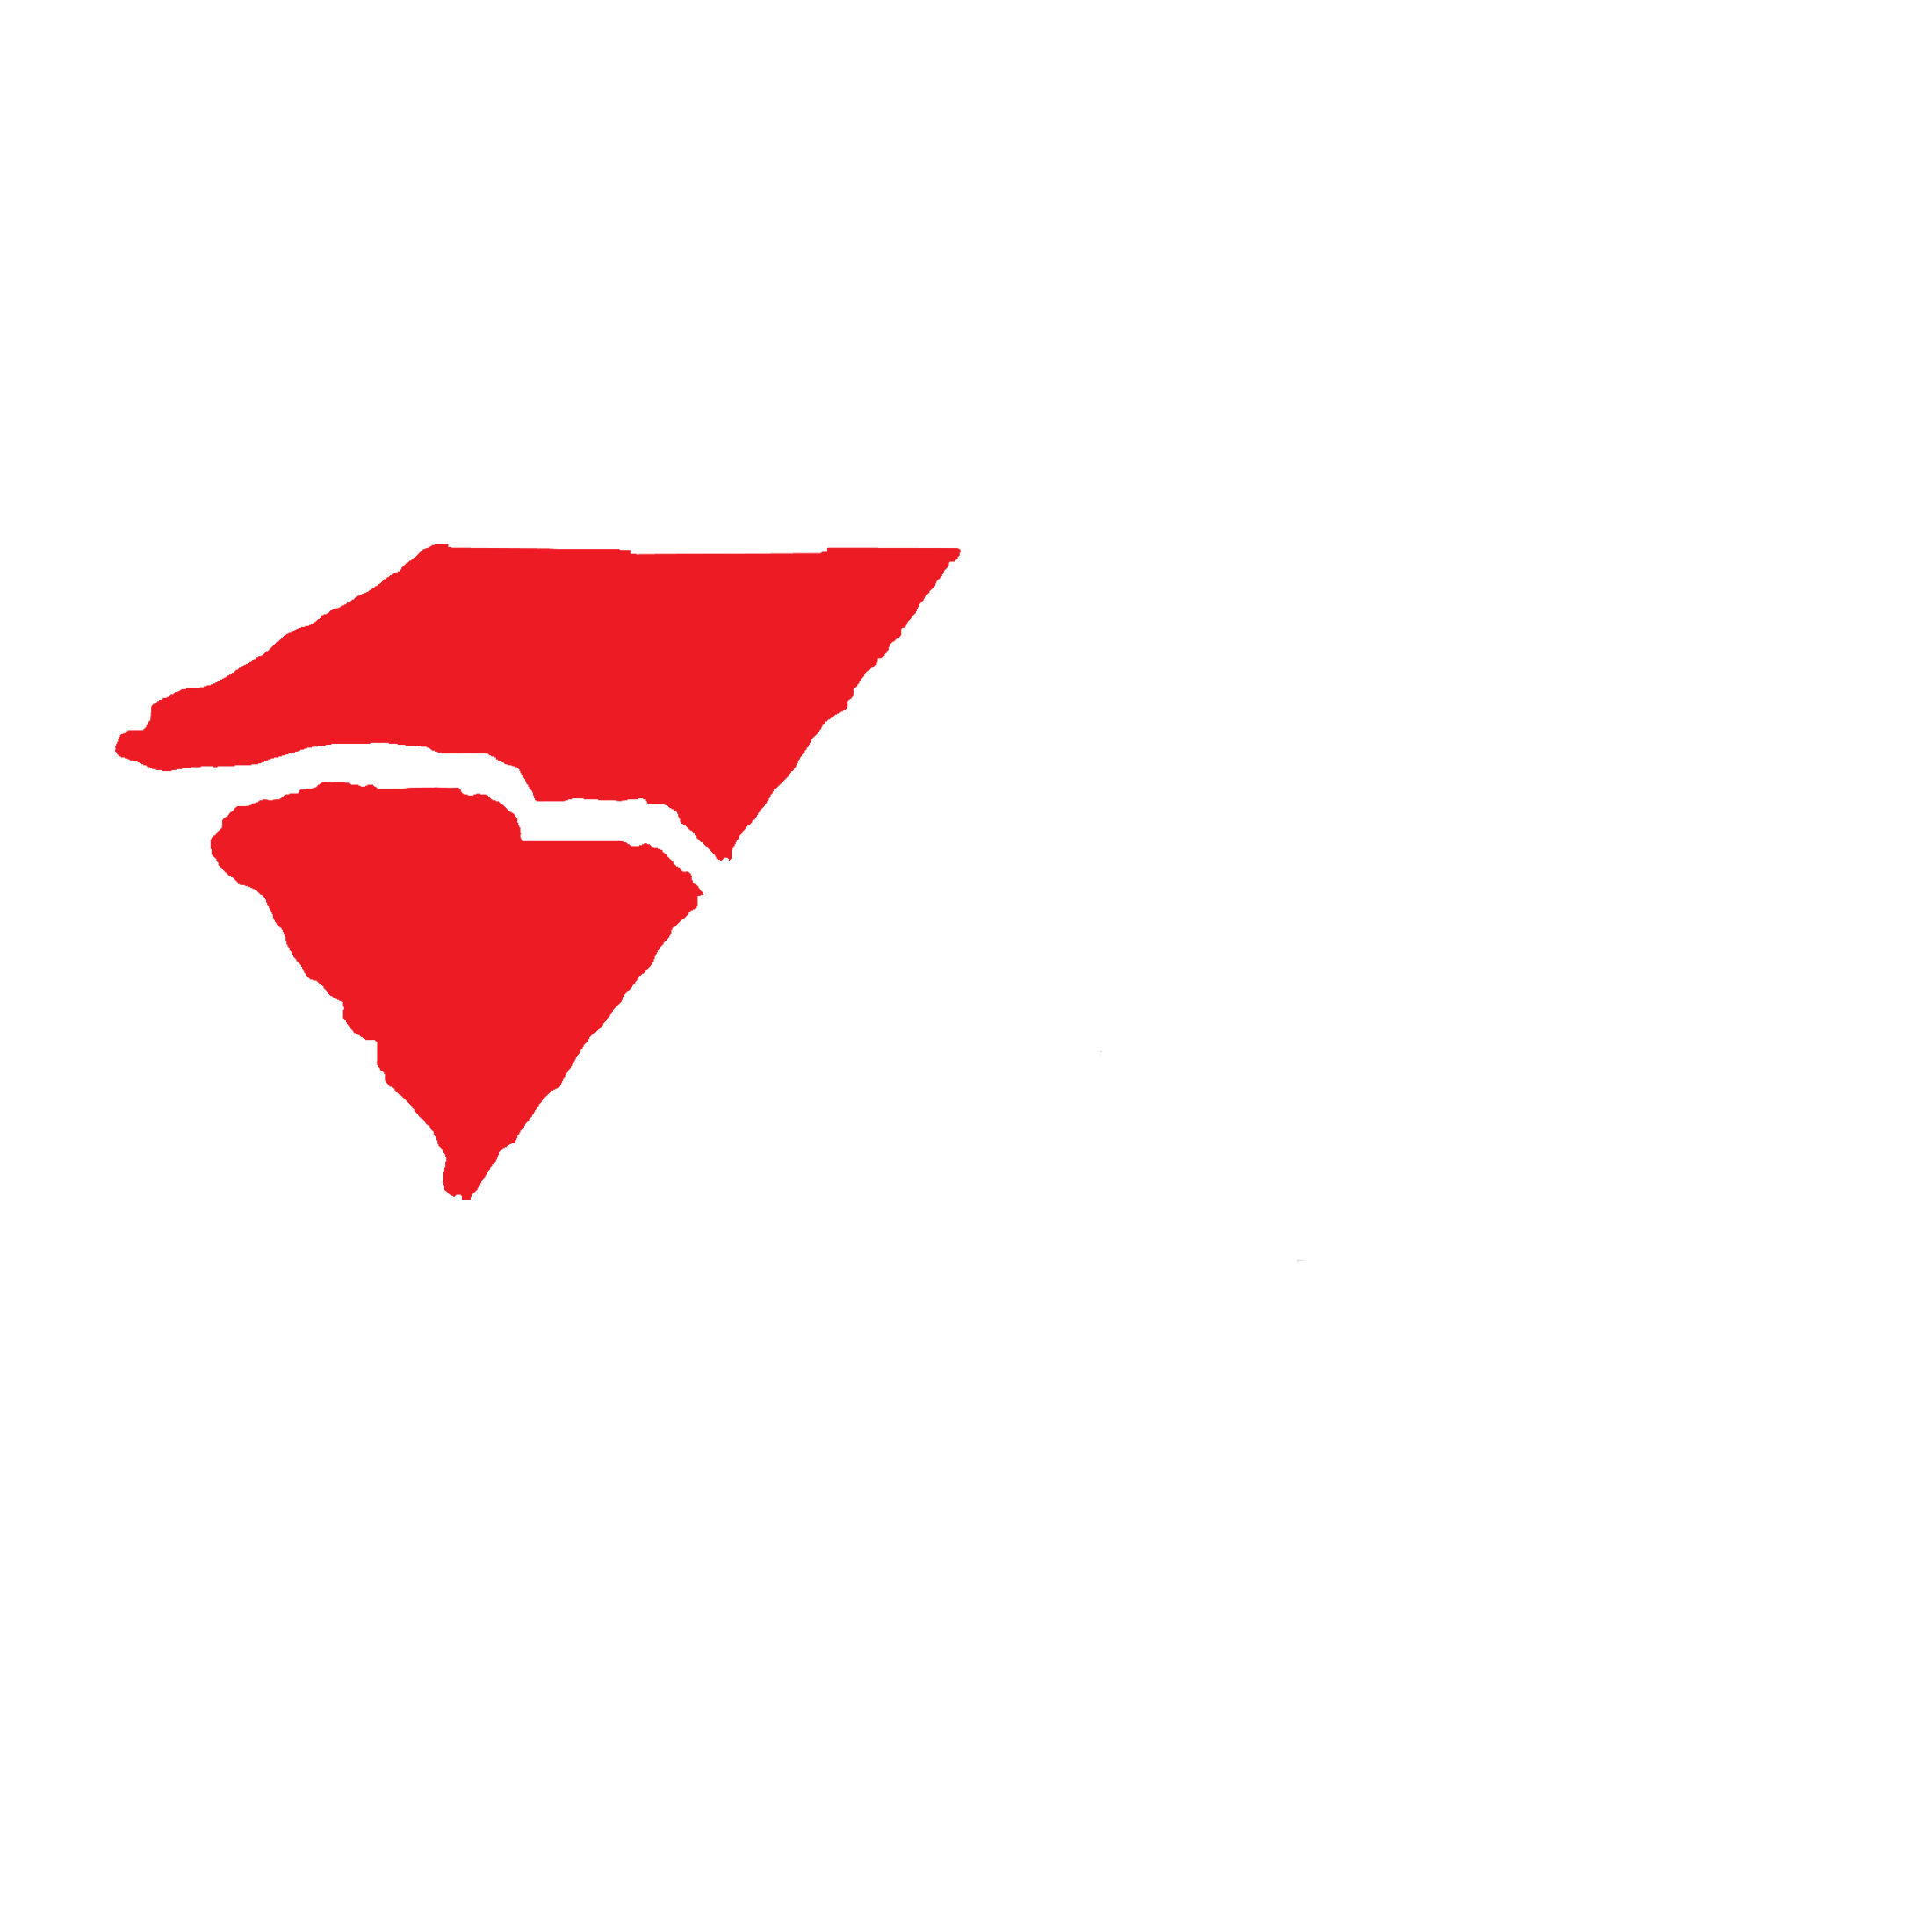 Alternative Roofing Solutions - ARS Roofing logo icon white